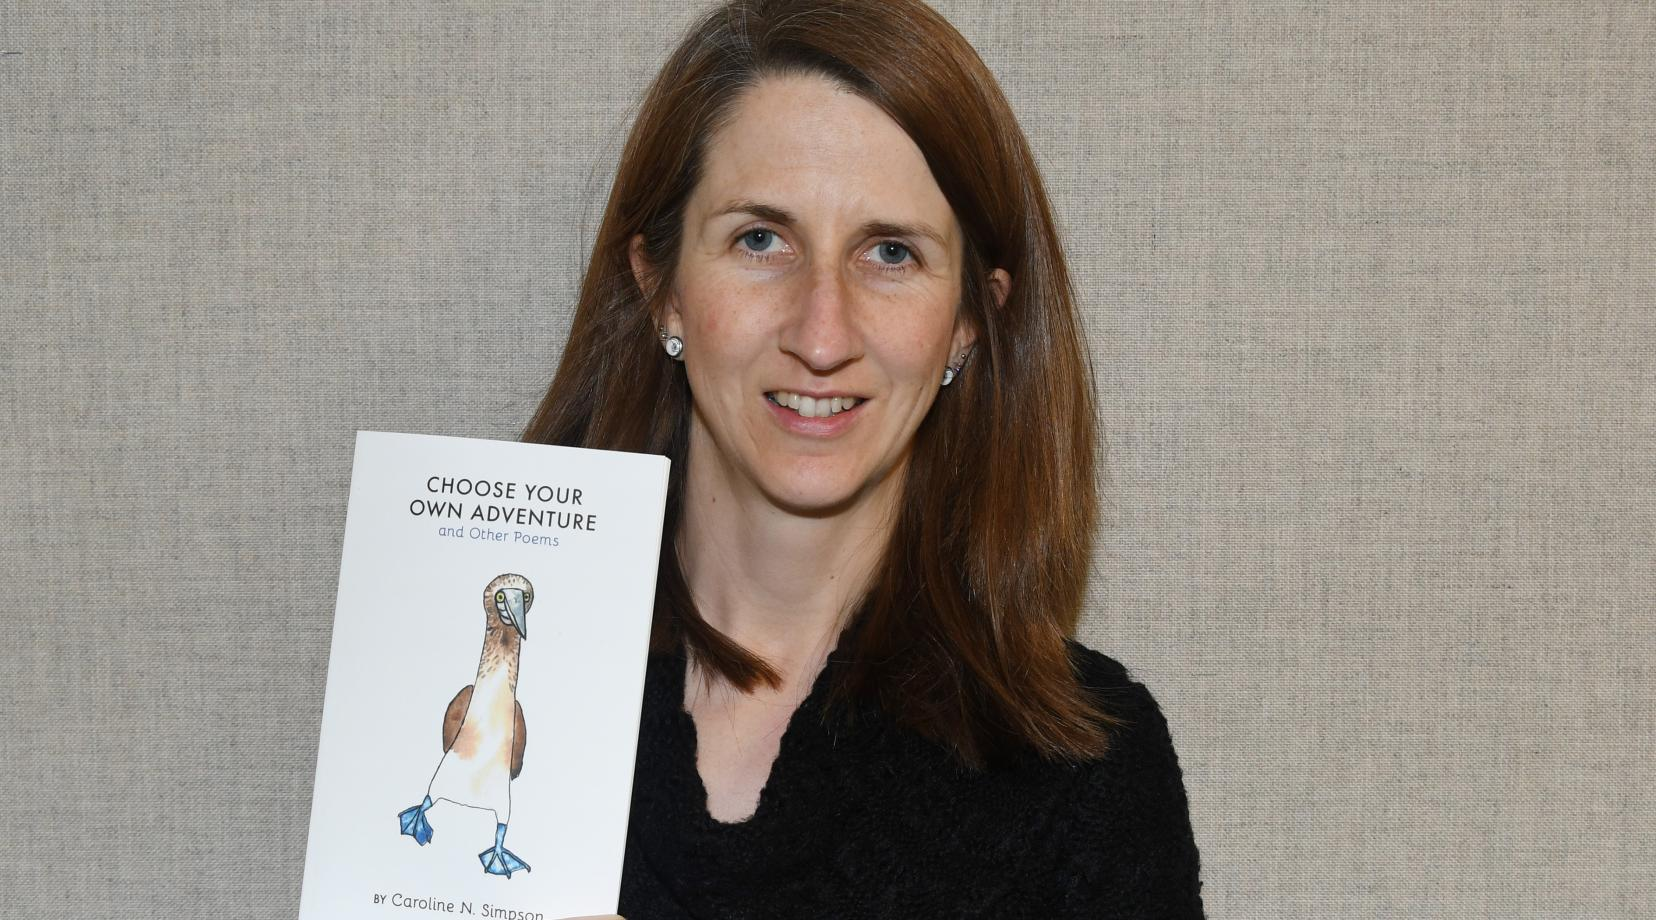 Caroline Simpson, an adjunct assistant professor, has published a book of poems inspired by her trip to the Galapagos Islands.